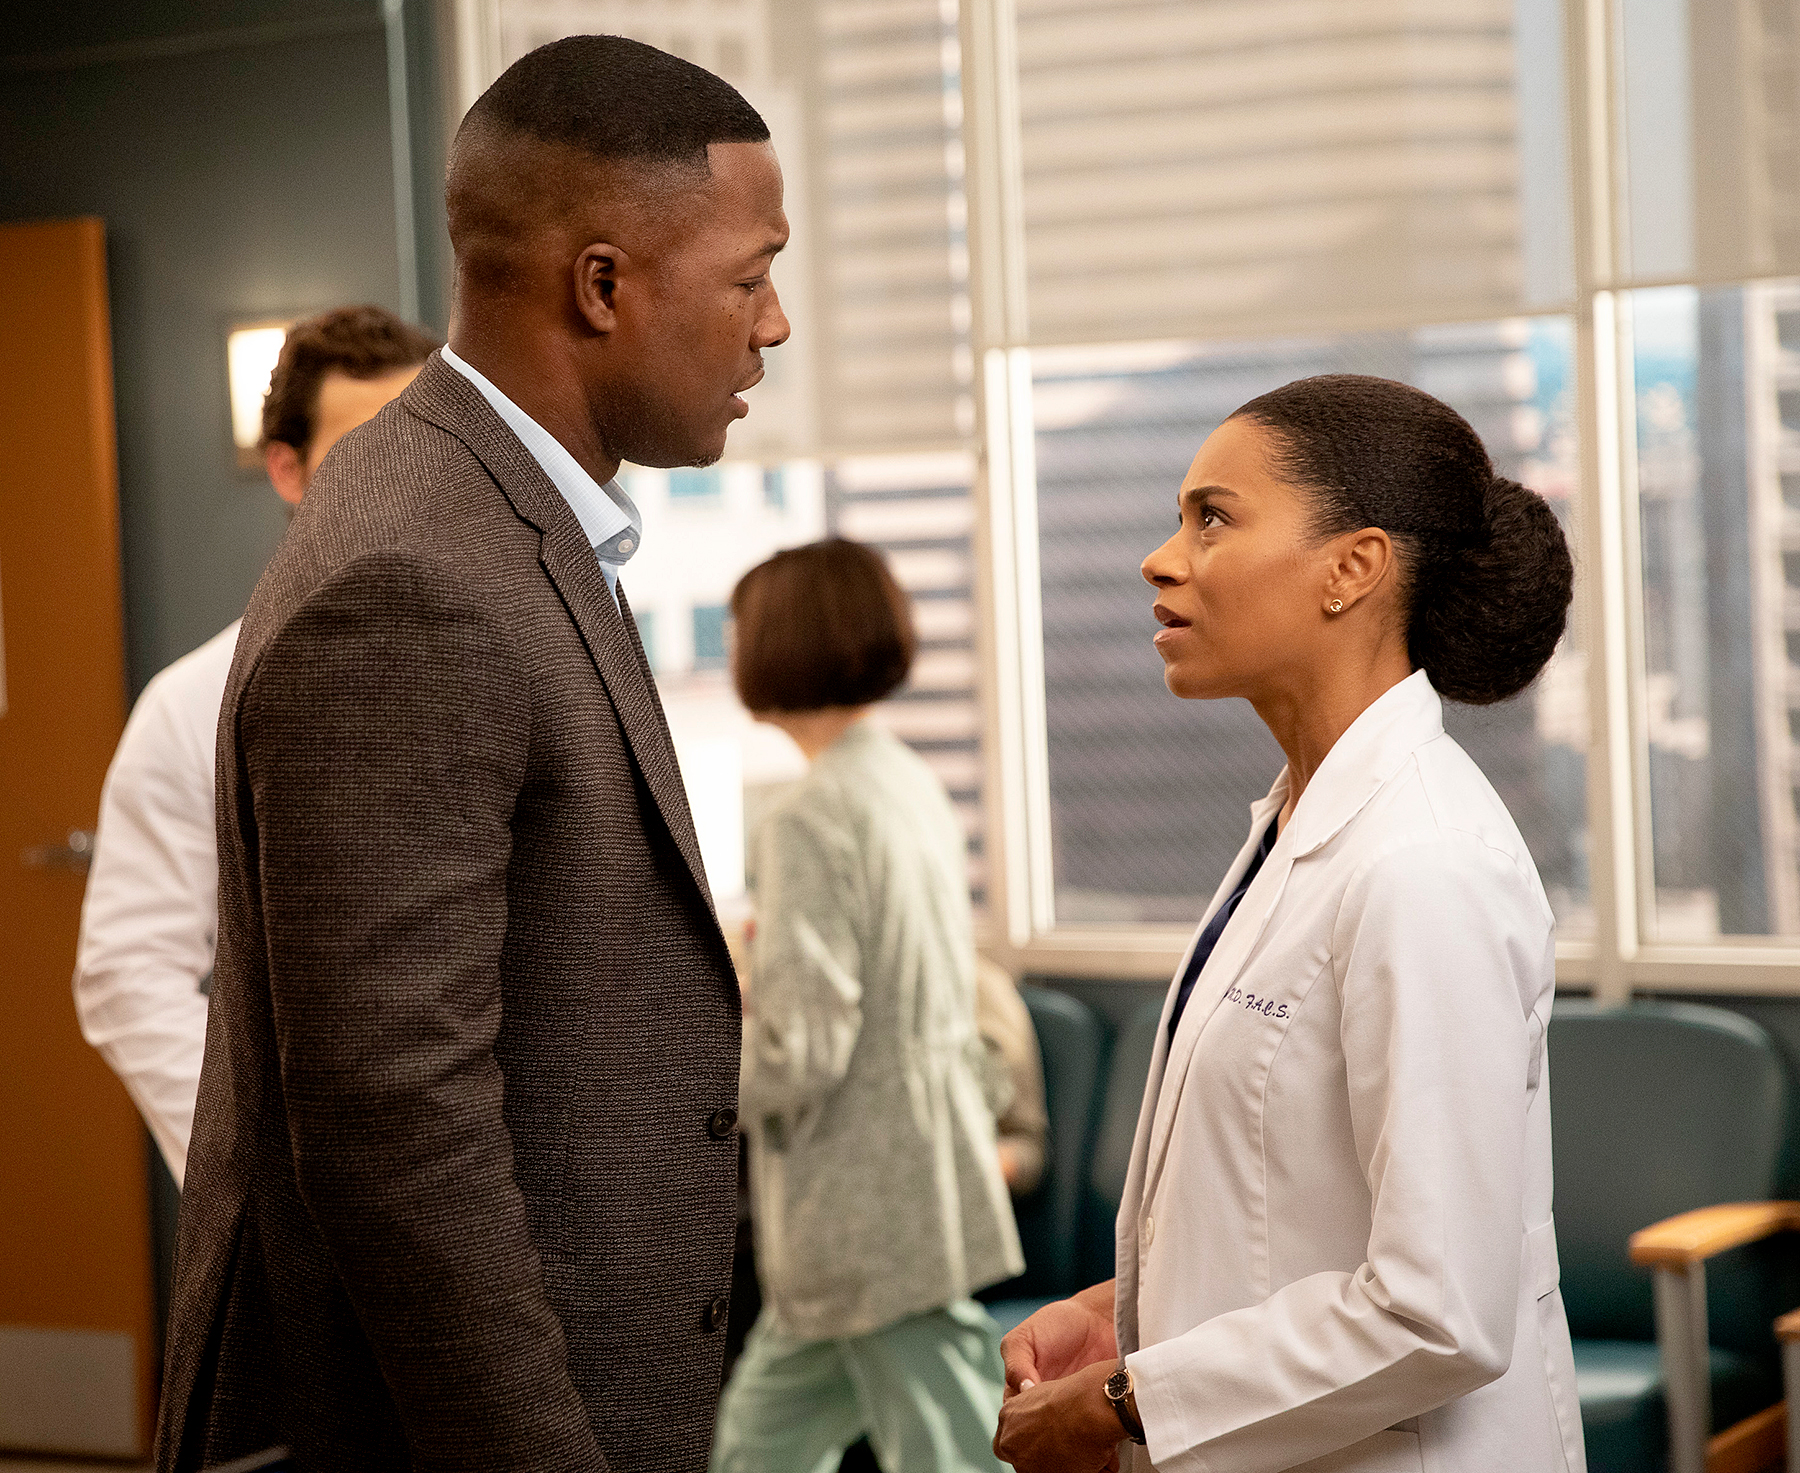 Flex Alexander and Kelly McCreary on Grey's Anatomy - Flex Alexander and Kelly McCreary on Grey's Anatomy